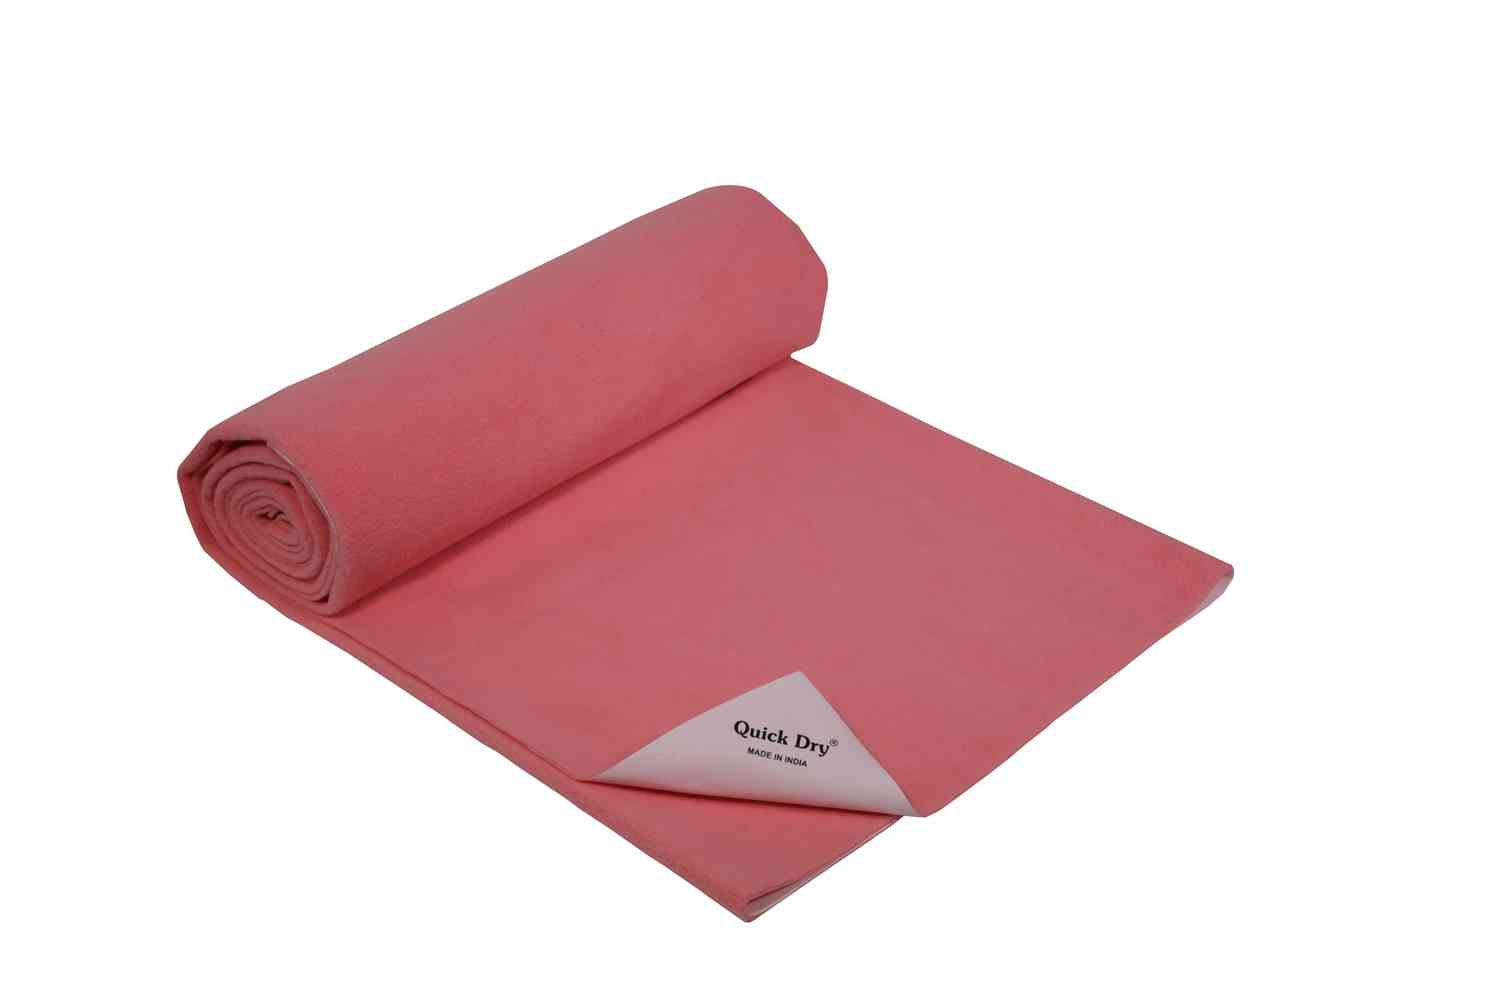 Quick Dry Baby Bed Protector - Plain Rose - Single Bed - 200 X 140 Cms